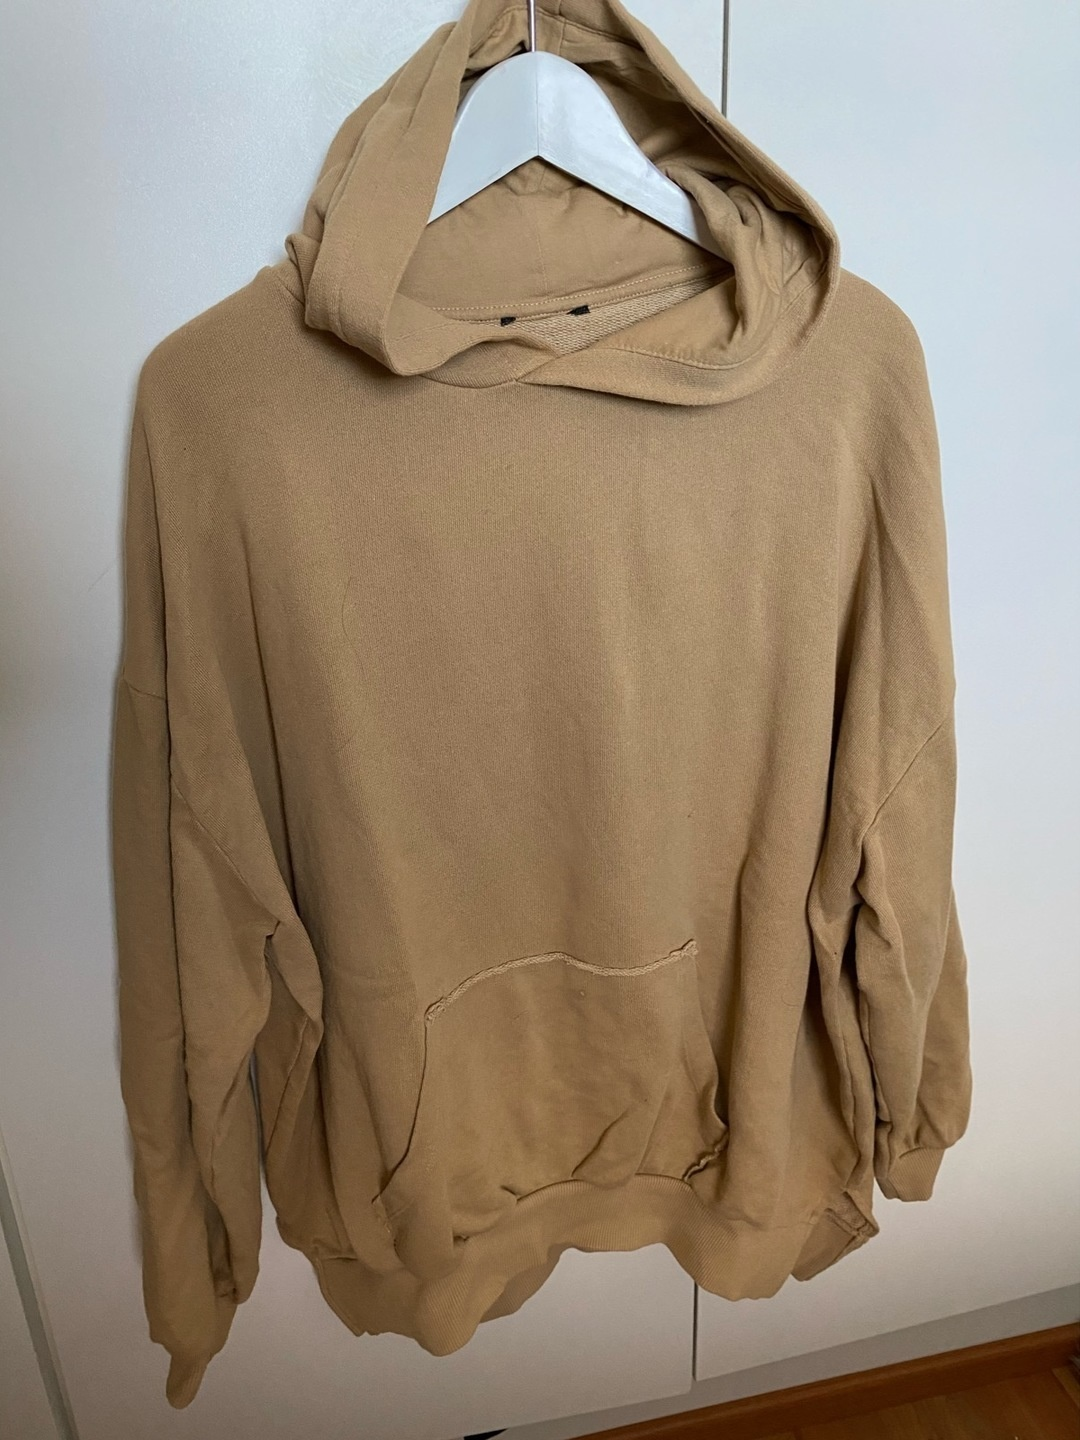 Women's hoodies & sweatshirts - PULL&BEAR photo 1